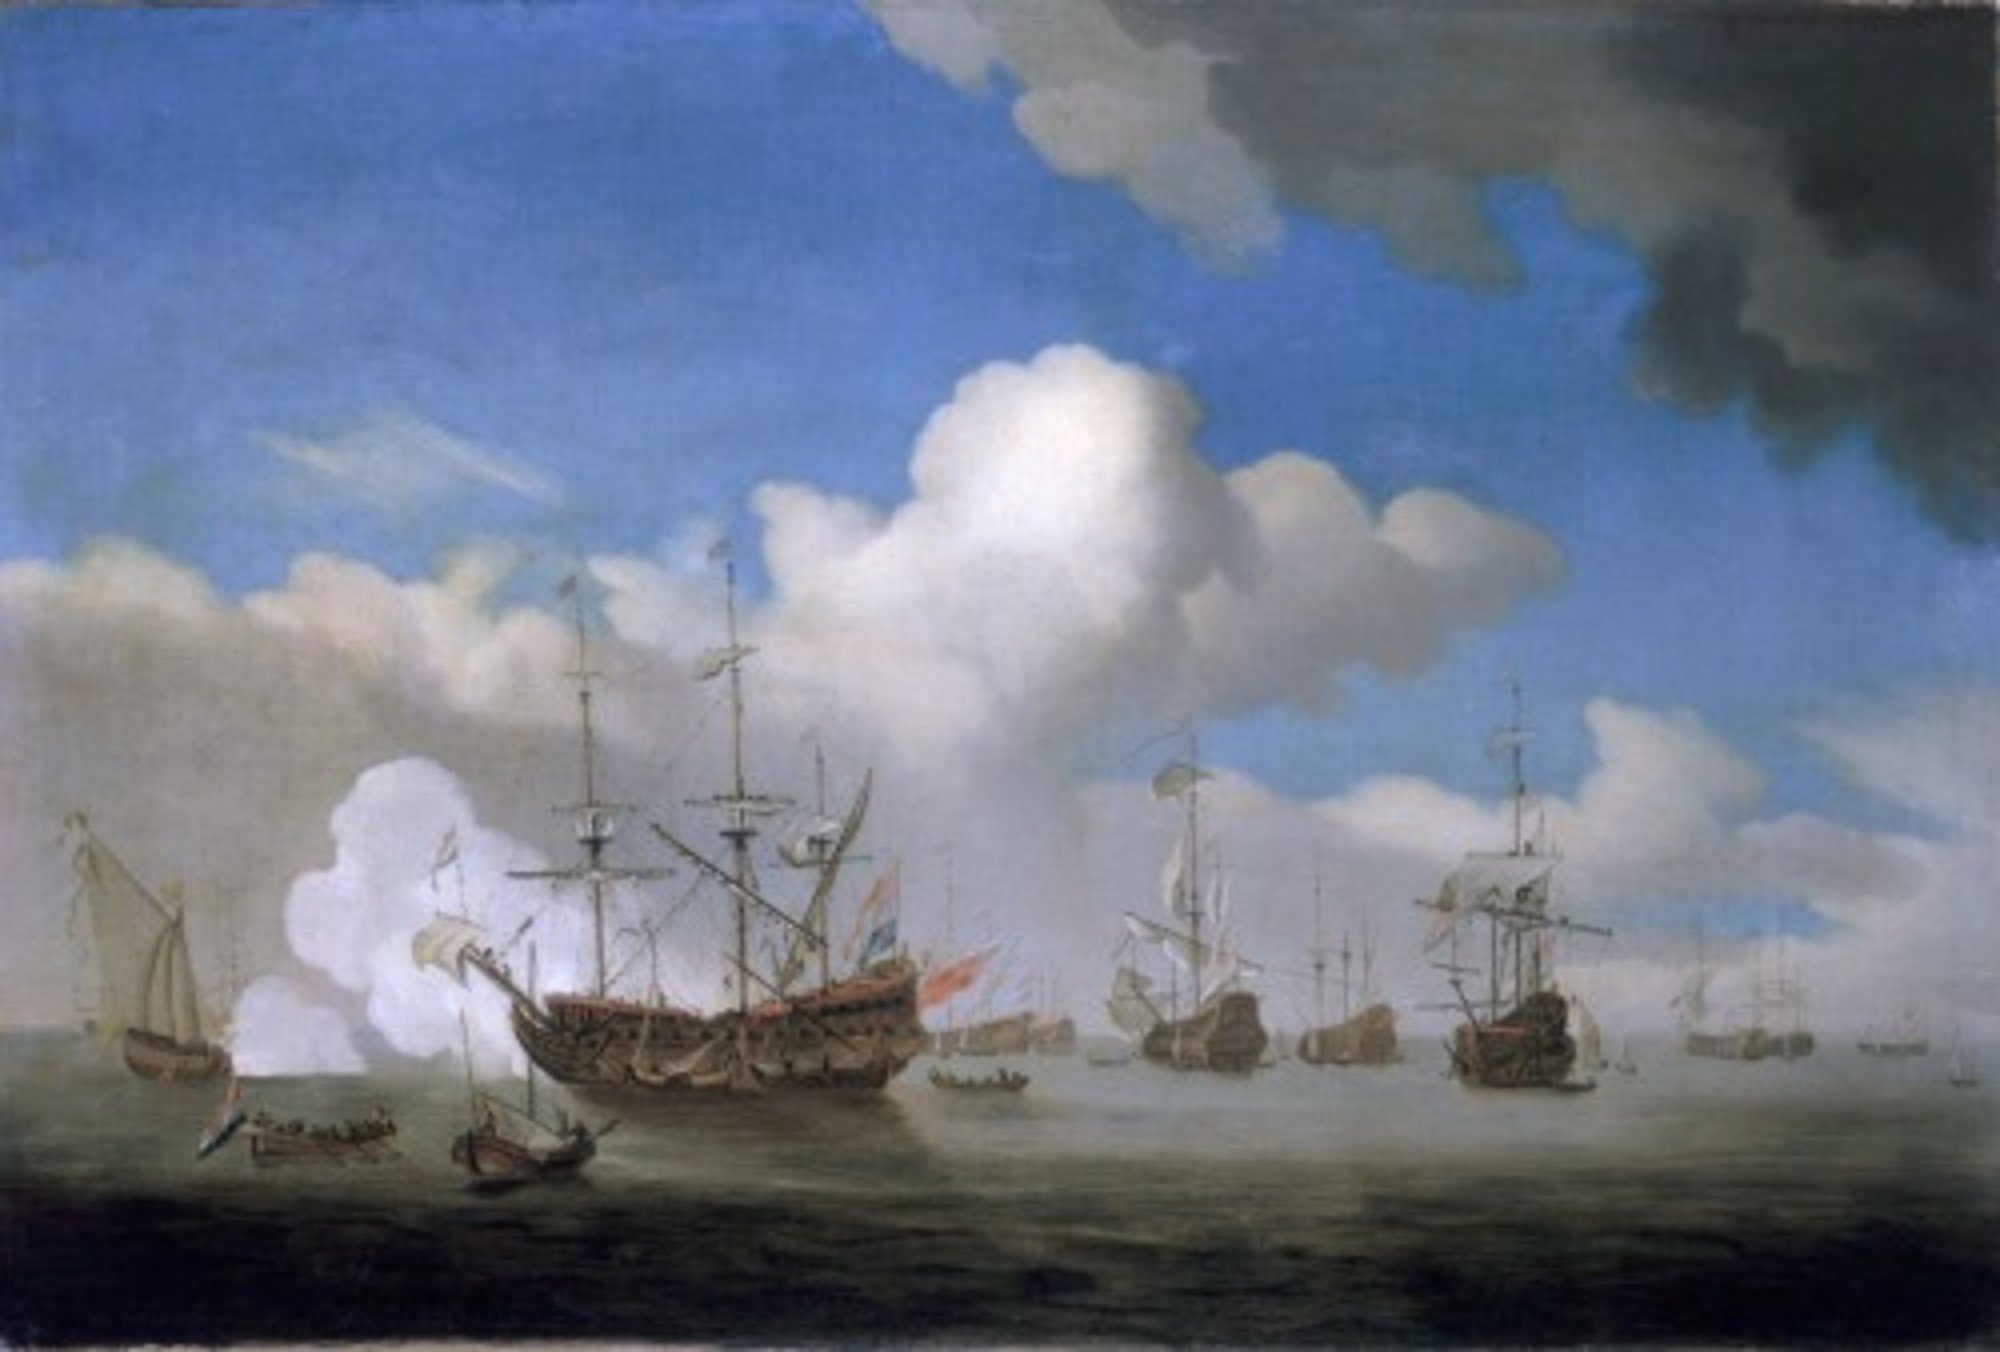 Willem-van-de-Velde-the-Younger---The-Captured-HMS-Royal-Prince-brought-into-Dutch-waters-after-the-Four-Days-battle-4-June-1666.jpg